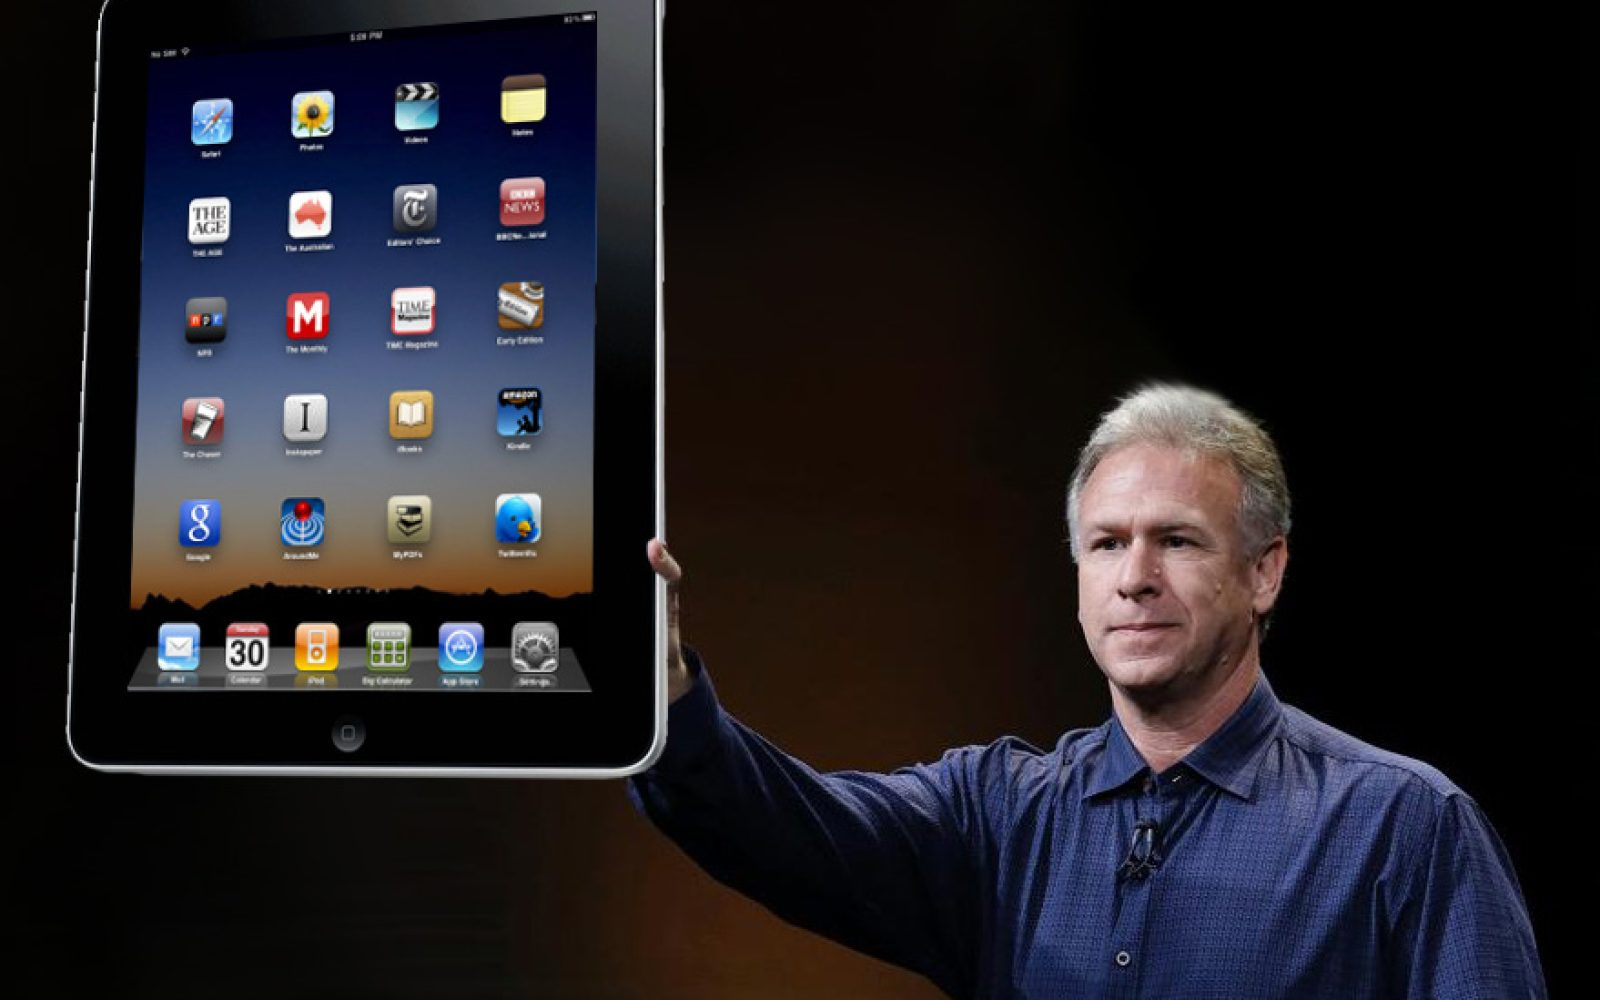 Someone got punk'd: iPad Maxi rumor is hilariously making the rounds